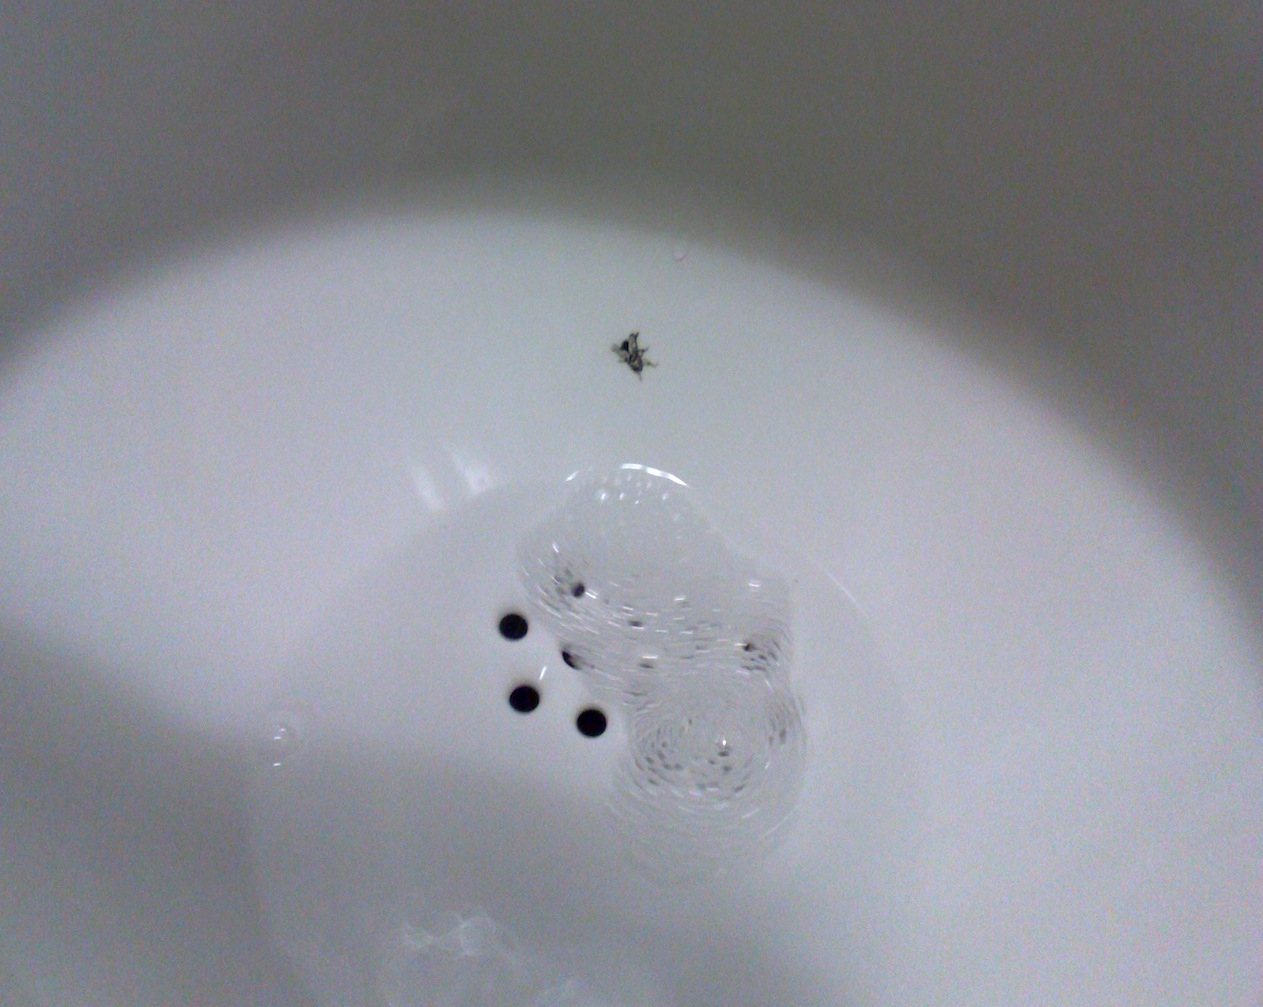 Painted fly on urinal: a 'nudge' that reduces unwanted splashes